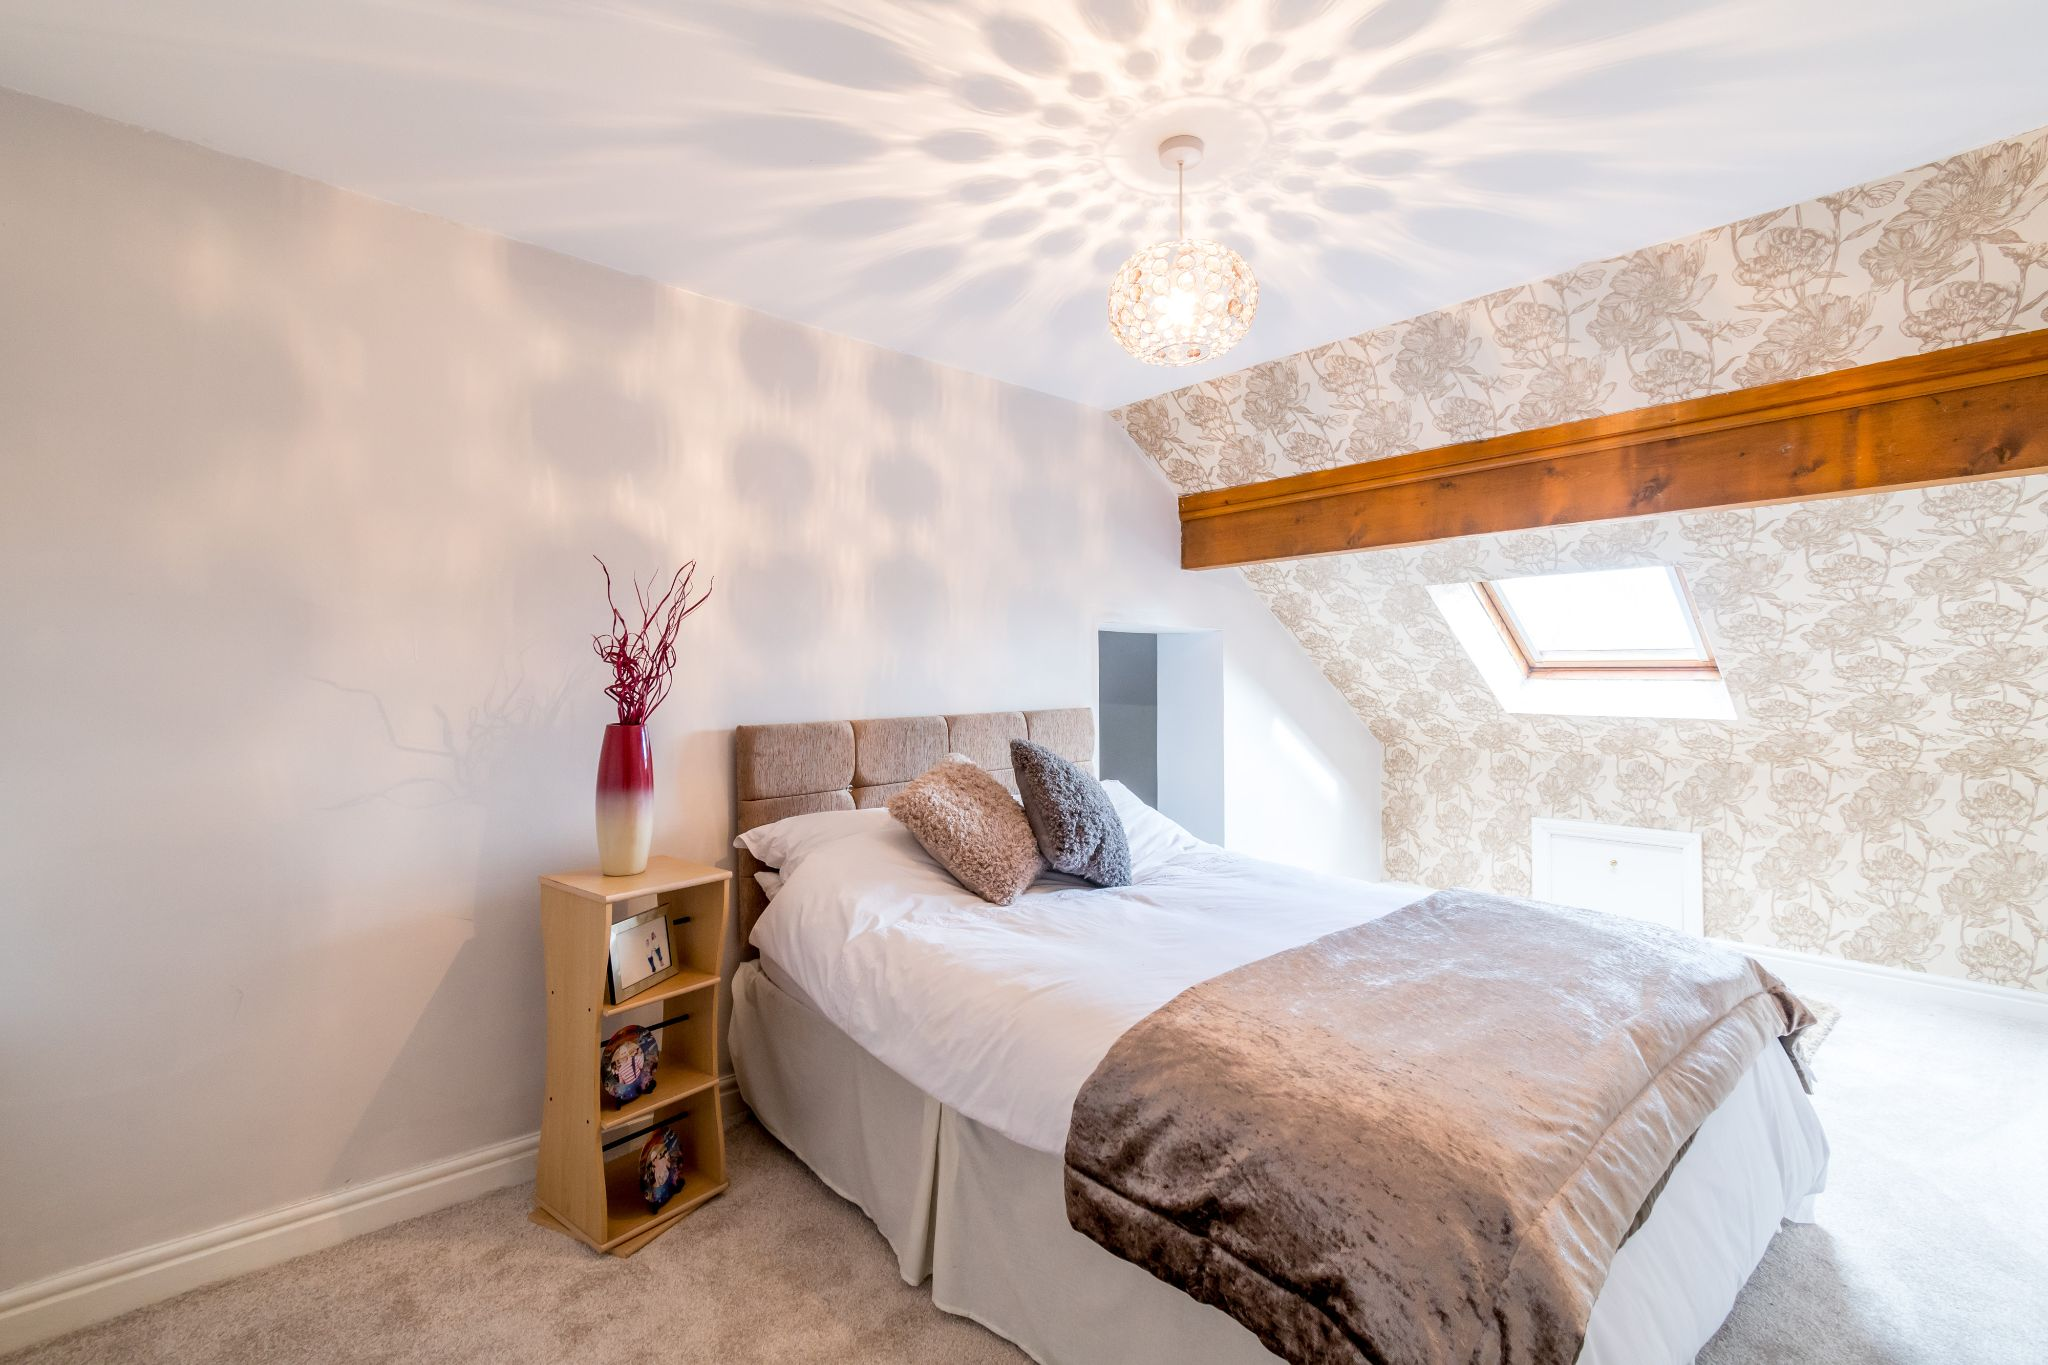 5 bedroom detached house For Sale in Brighouse - Bedroom 2